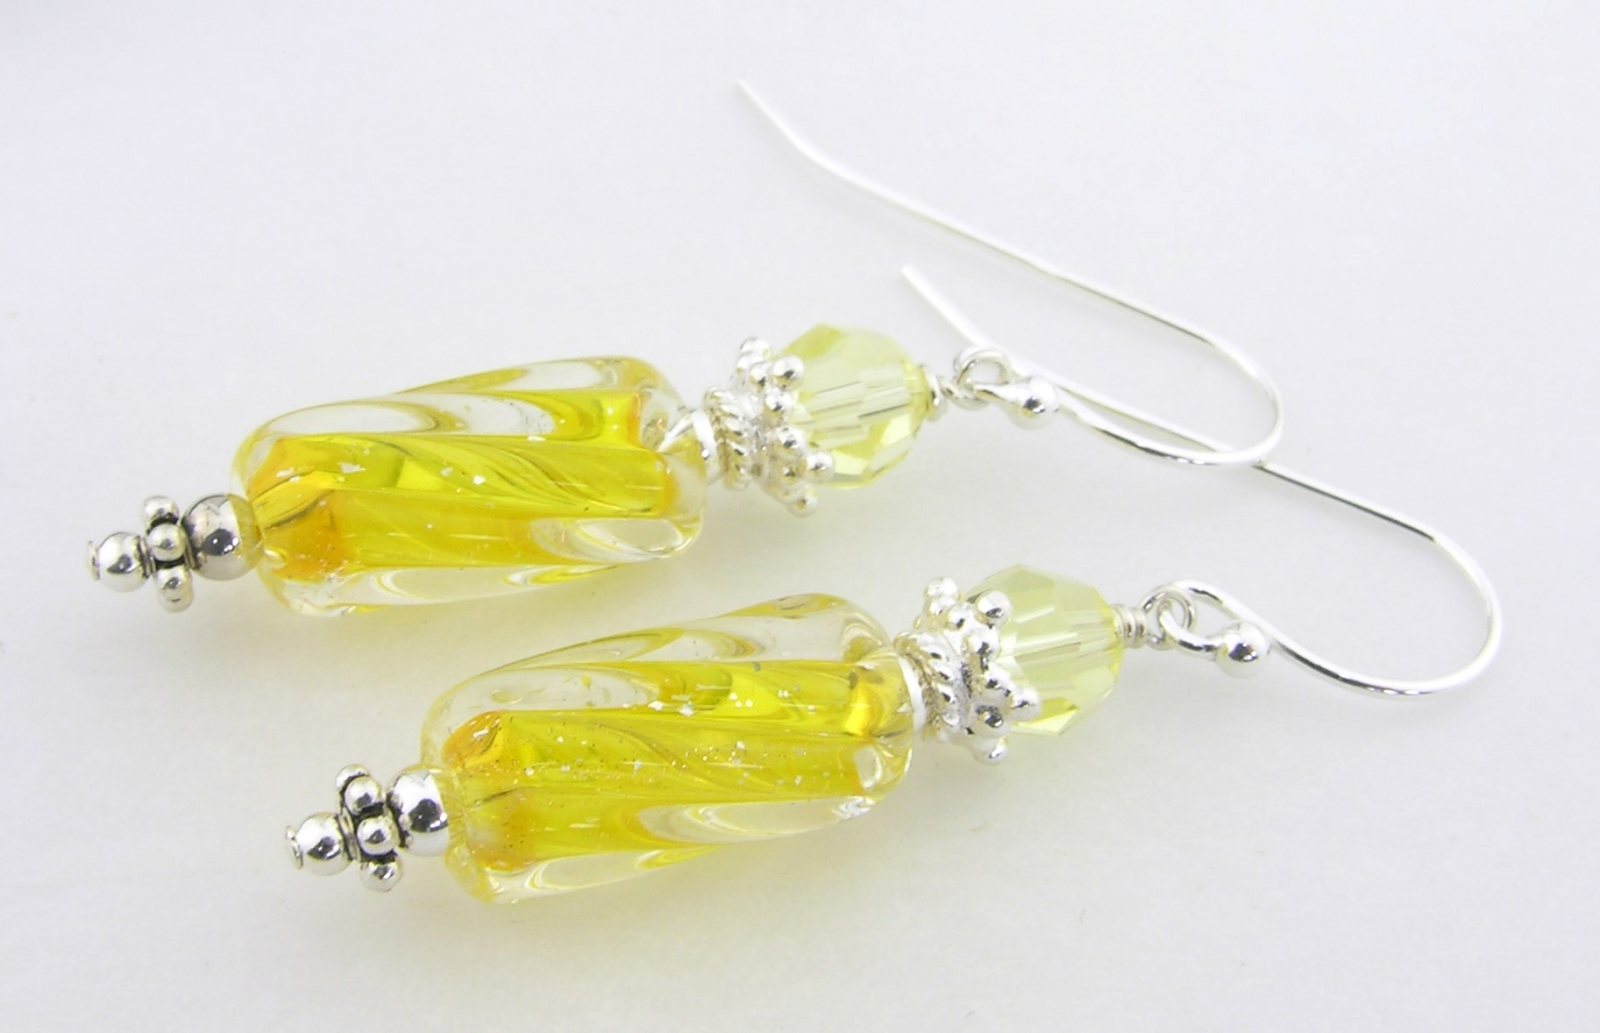 sunshine yellow furnace glass earrings with swarovski crystals sterling silver